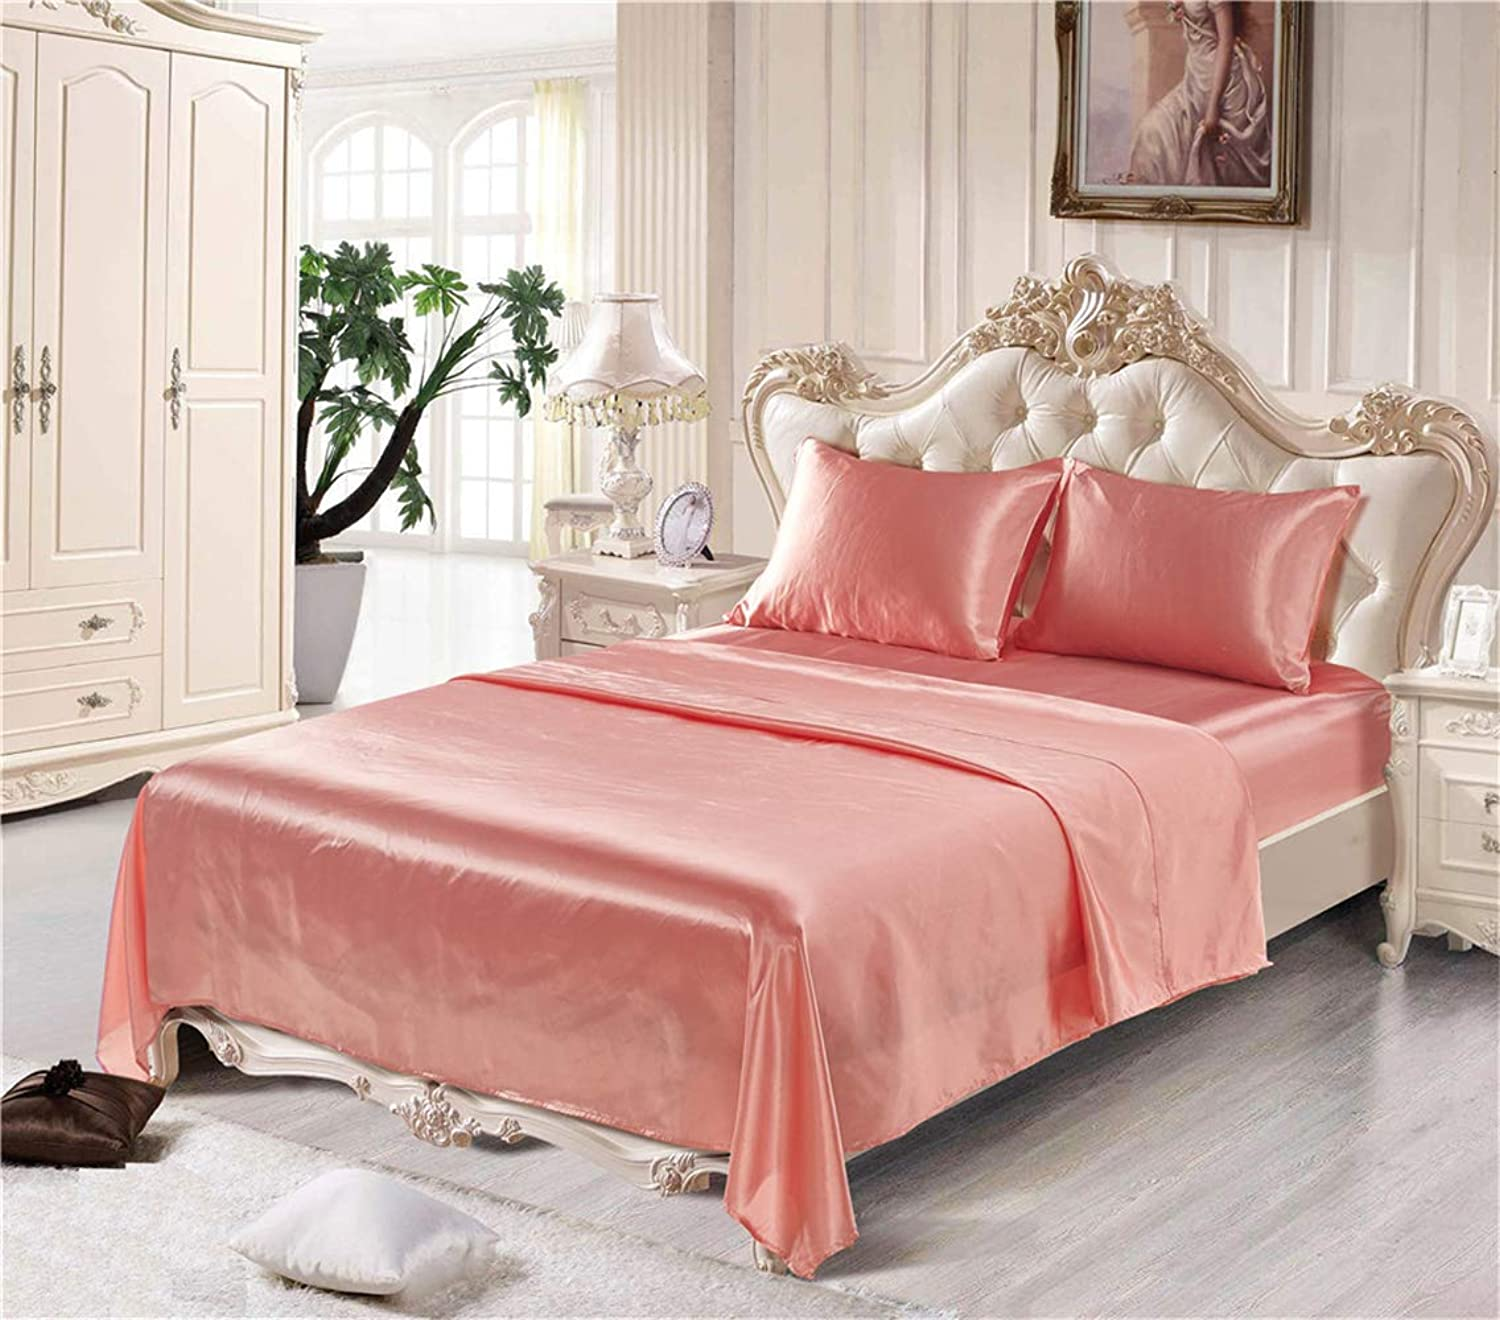 Kokolife Silky Bed Sheet Set 3 Piece Pure color Luxurious Sheet and Pillowcase Bedding Sets(Pink, Twin)